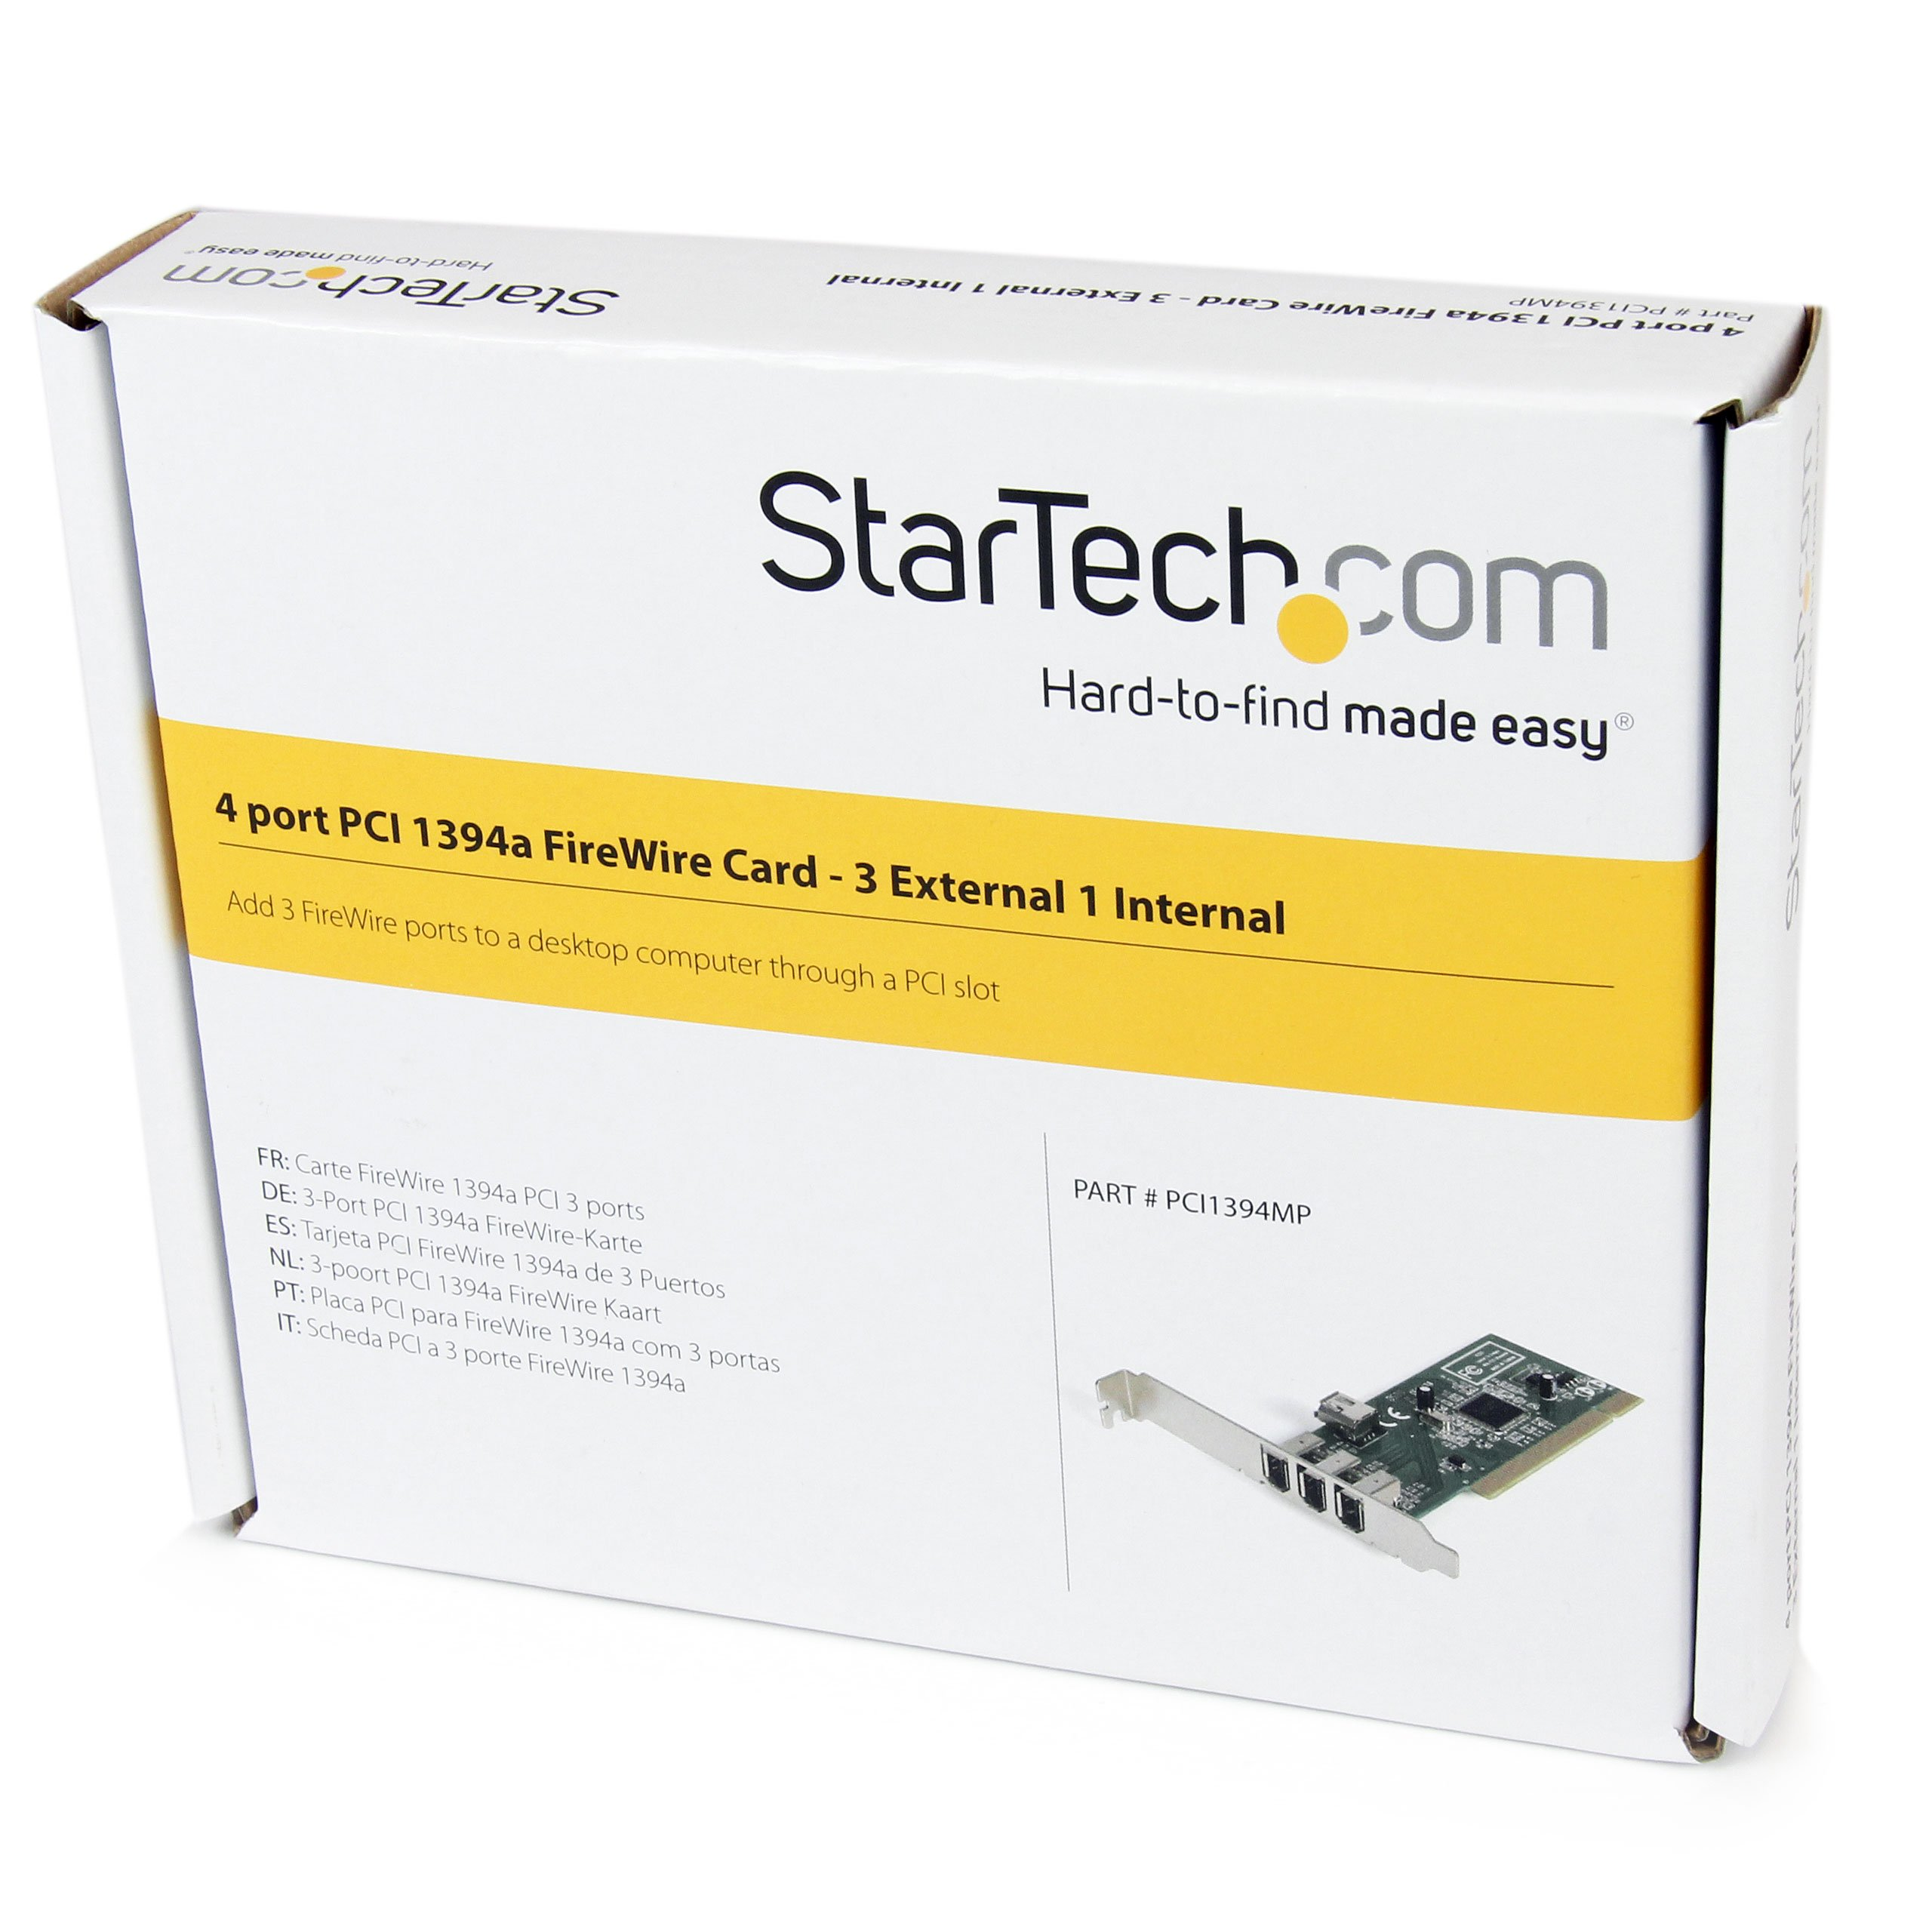 4 port PCI 1394a FireWire Adapter Card - 3 External 1 Internal by StarTech (Image #5)